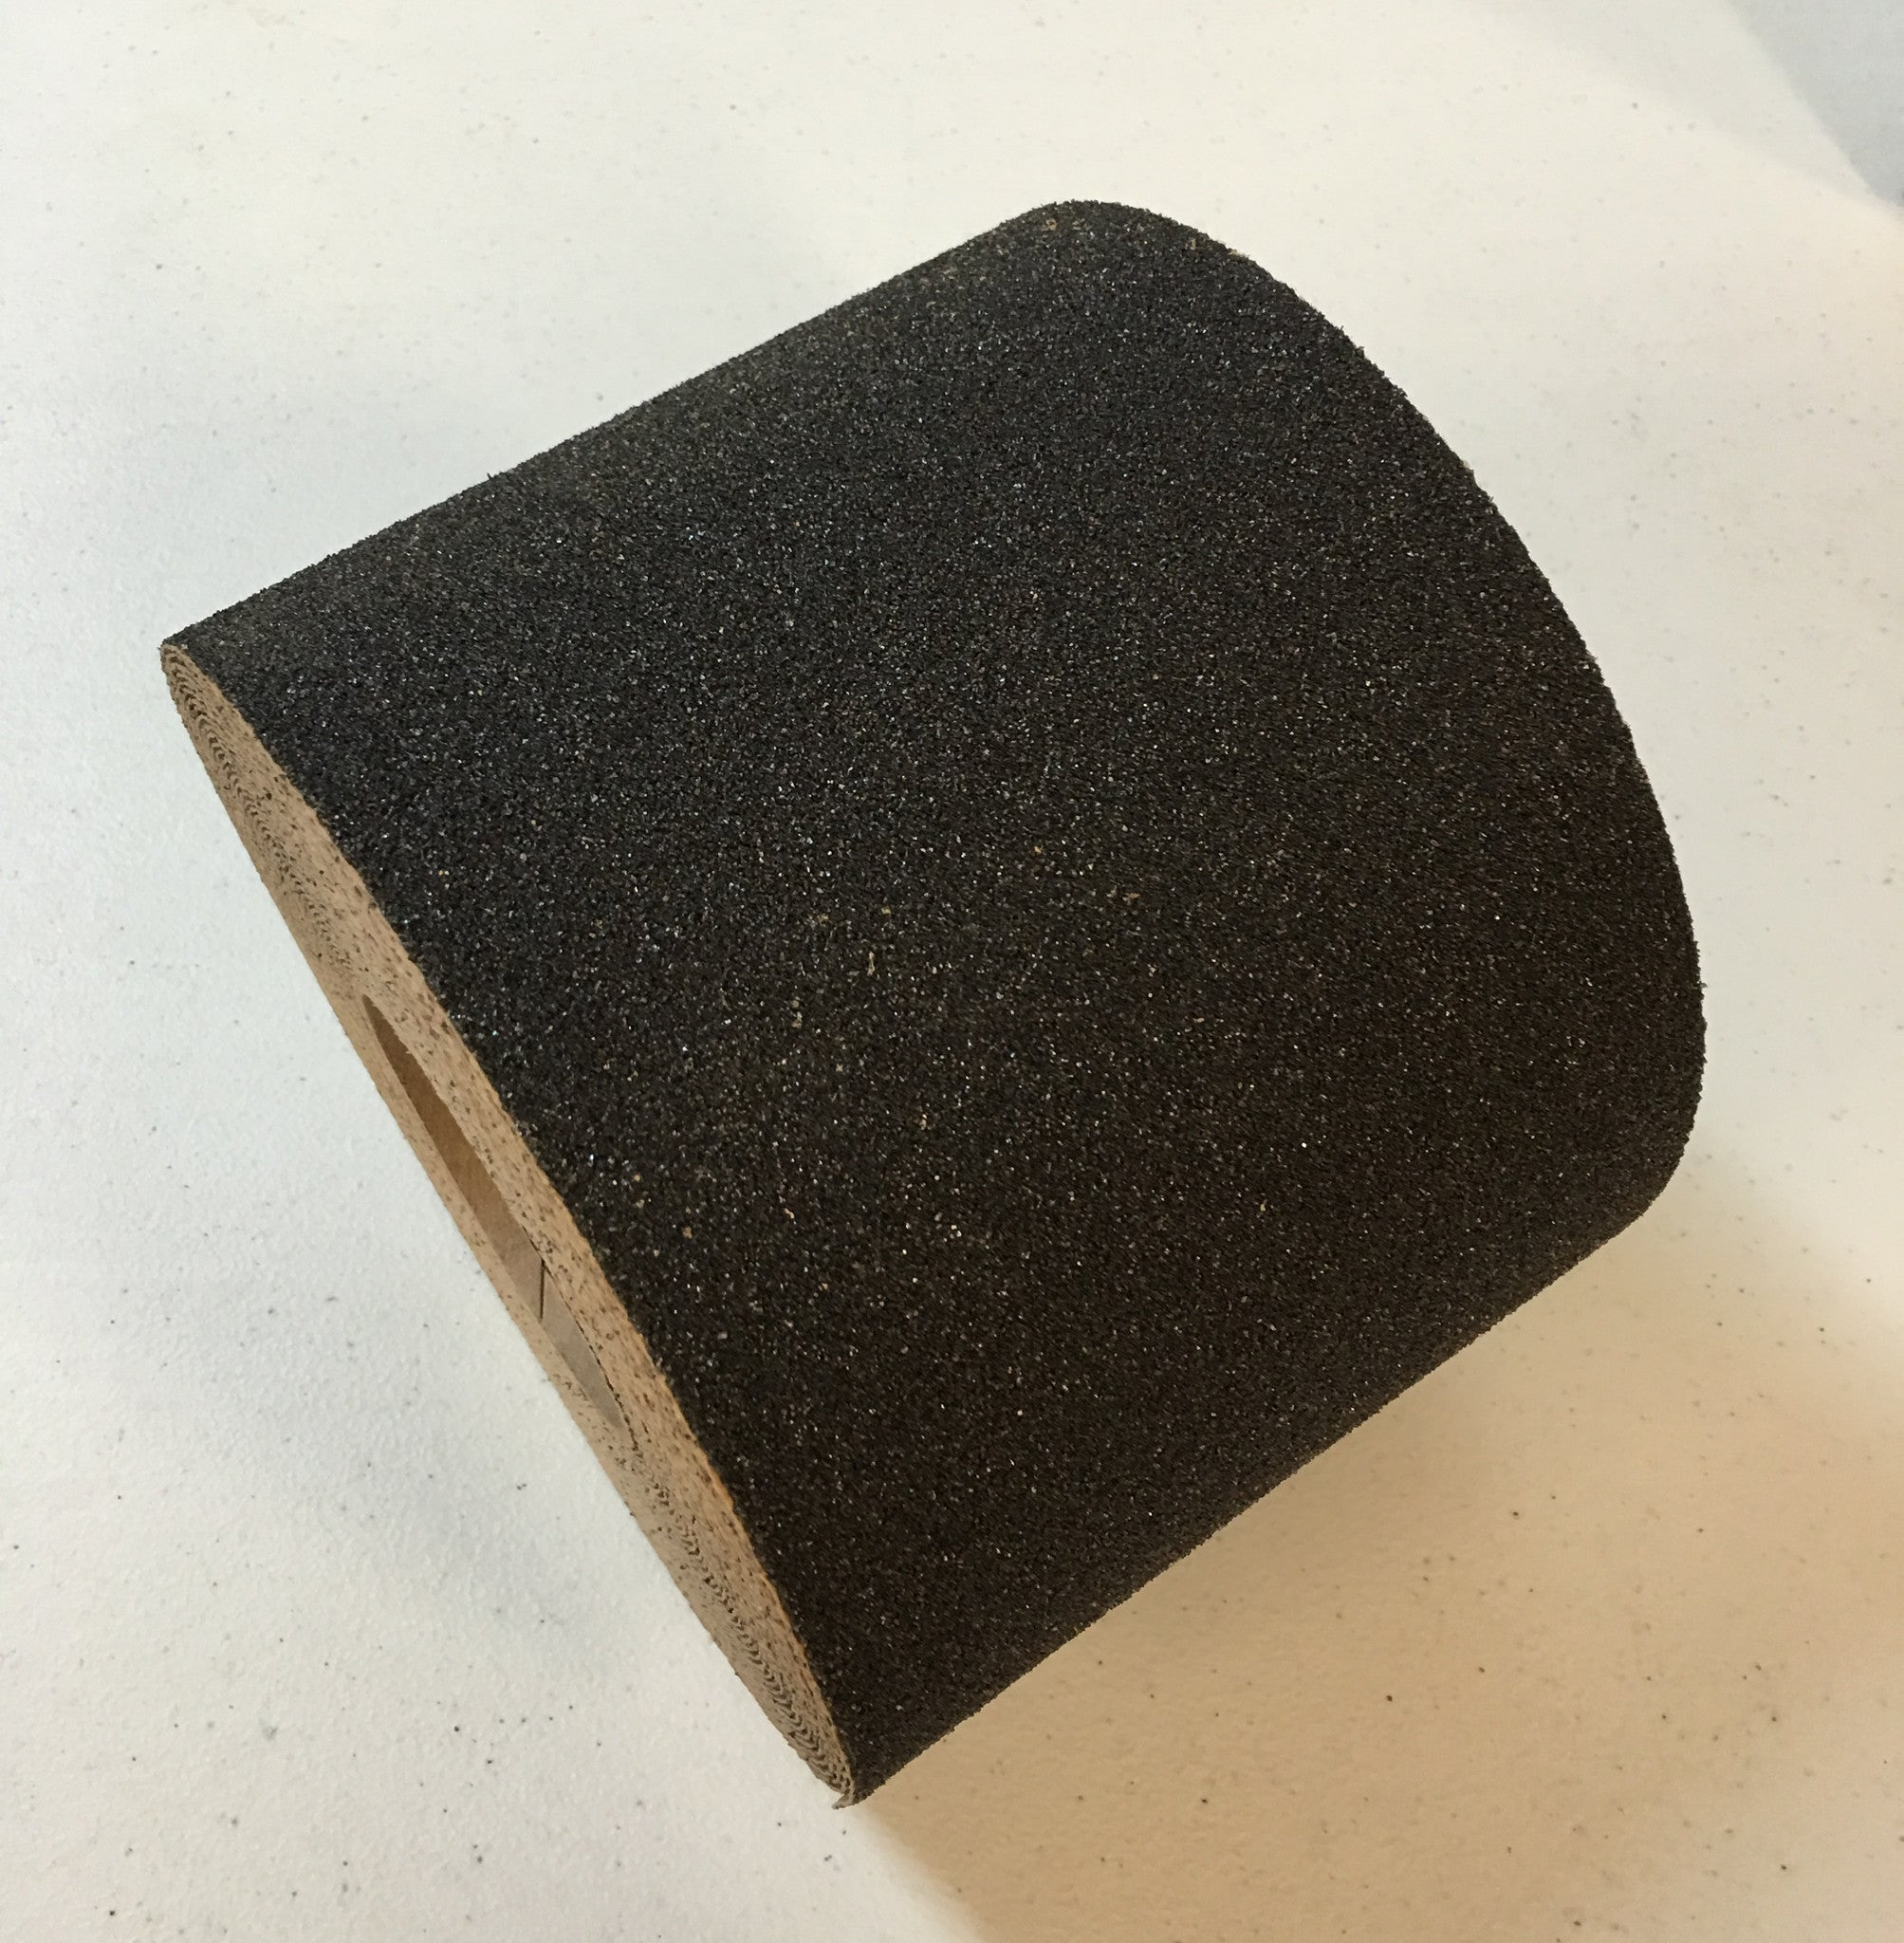 "4"" X 60' Foot Heavy Duty AO 36 Grit Abrasive Anti Slip Non Skid Safety Tape Black 88414 Case of 3 Rolls"